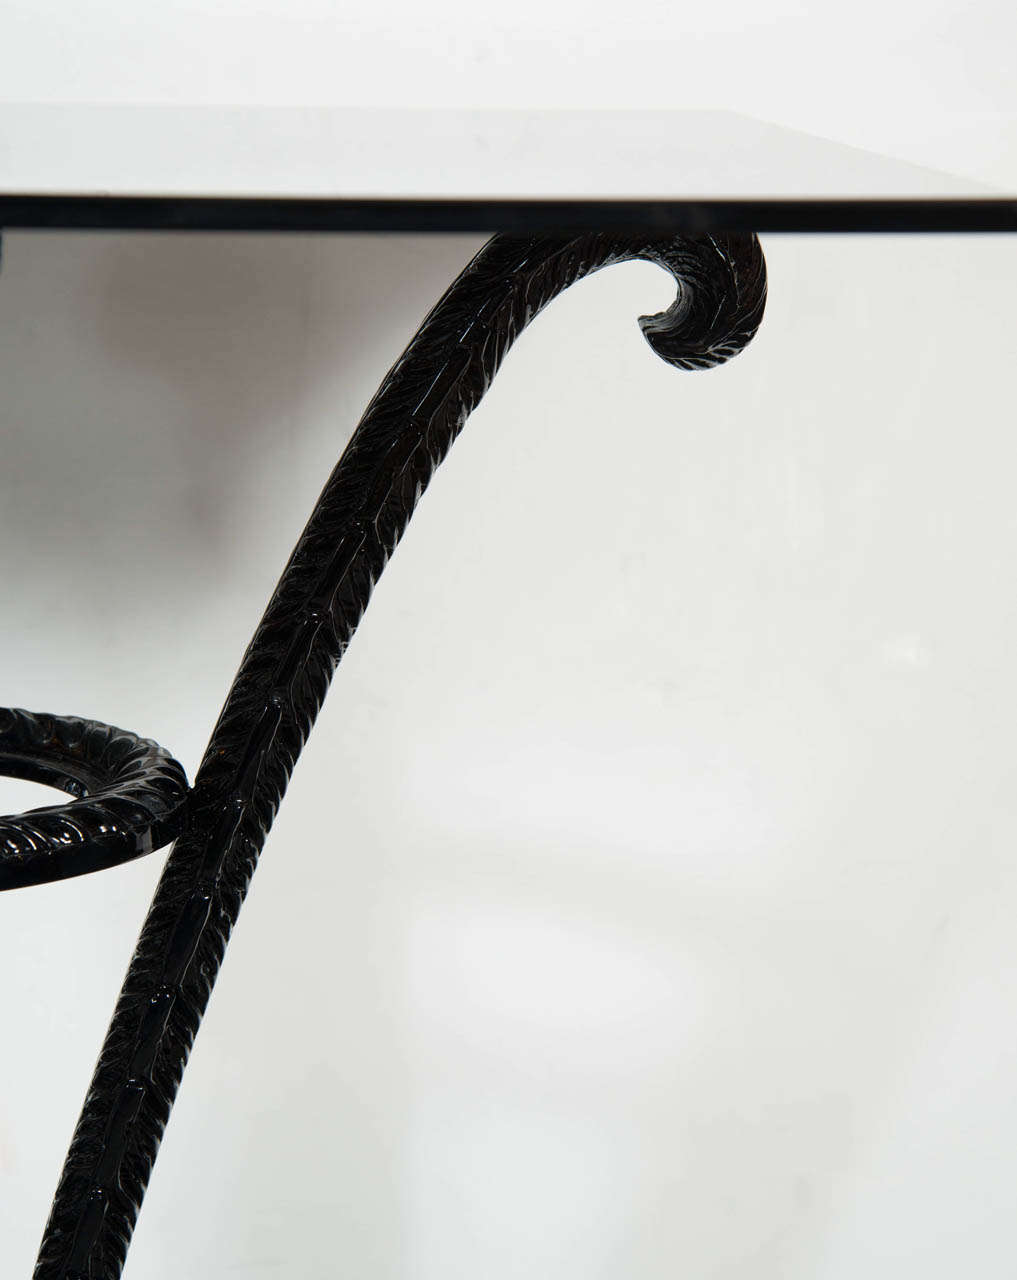 Elegant Art Deco Plume Table by Grosfeld House in Black Lacquer 5